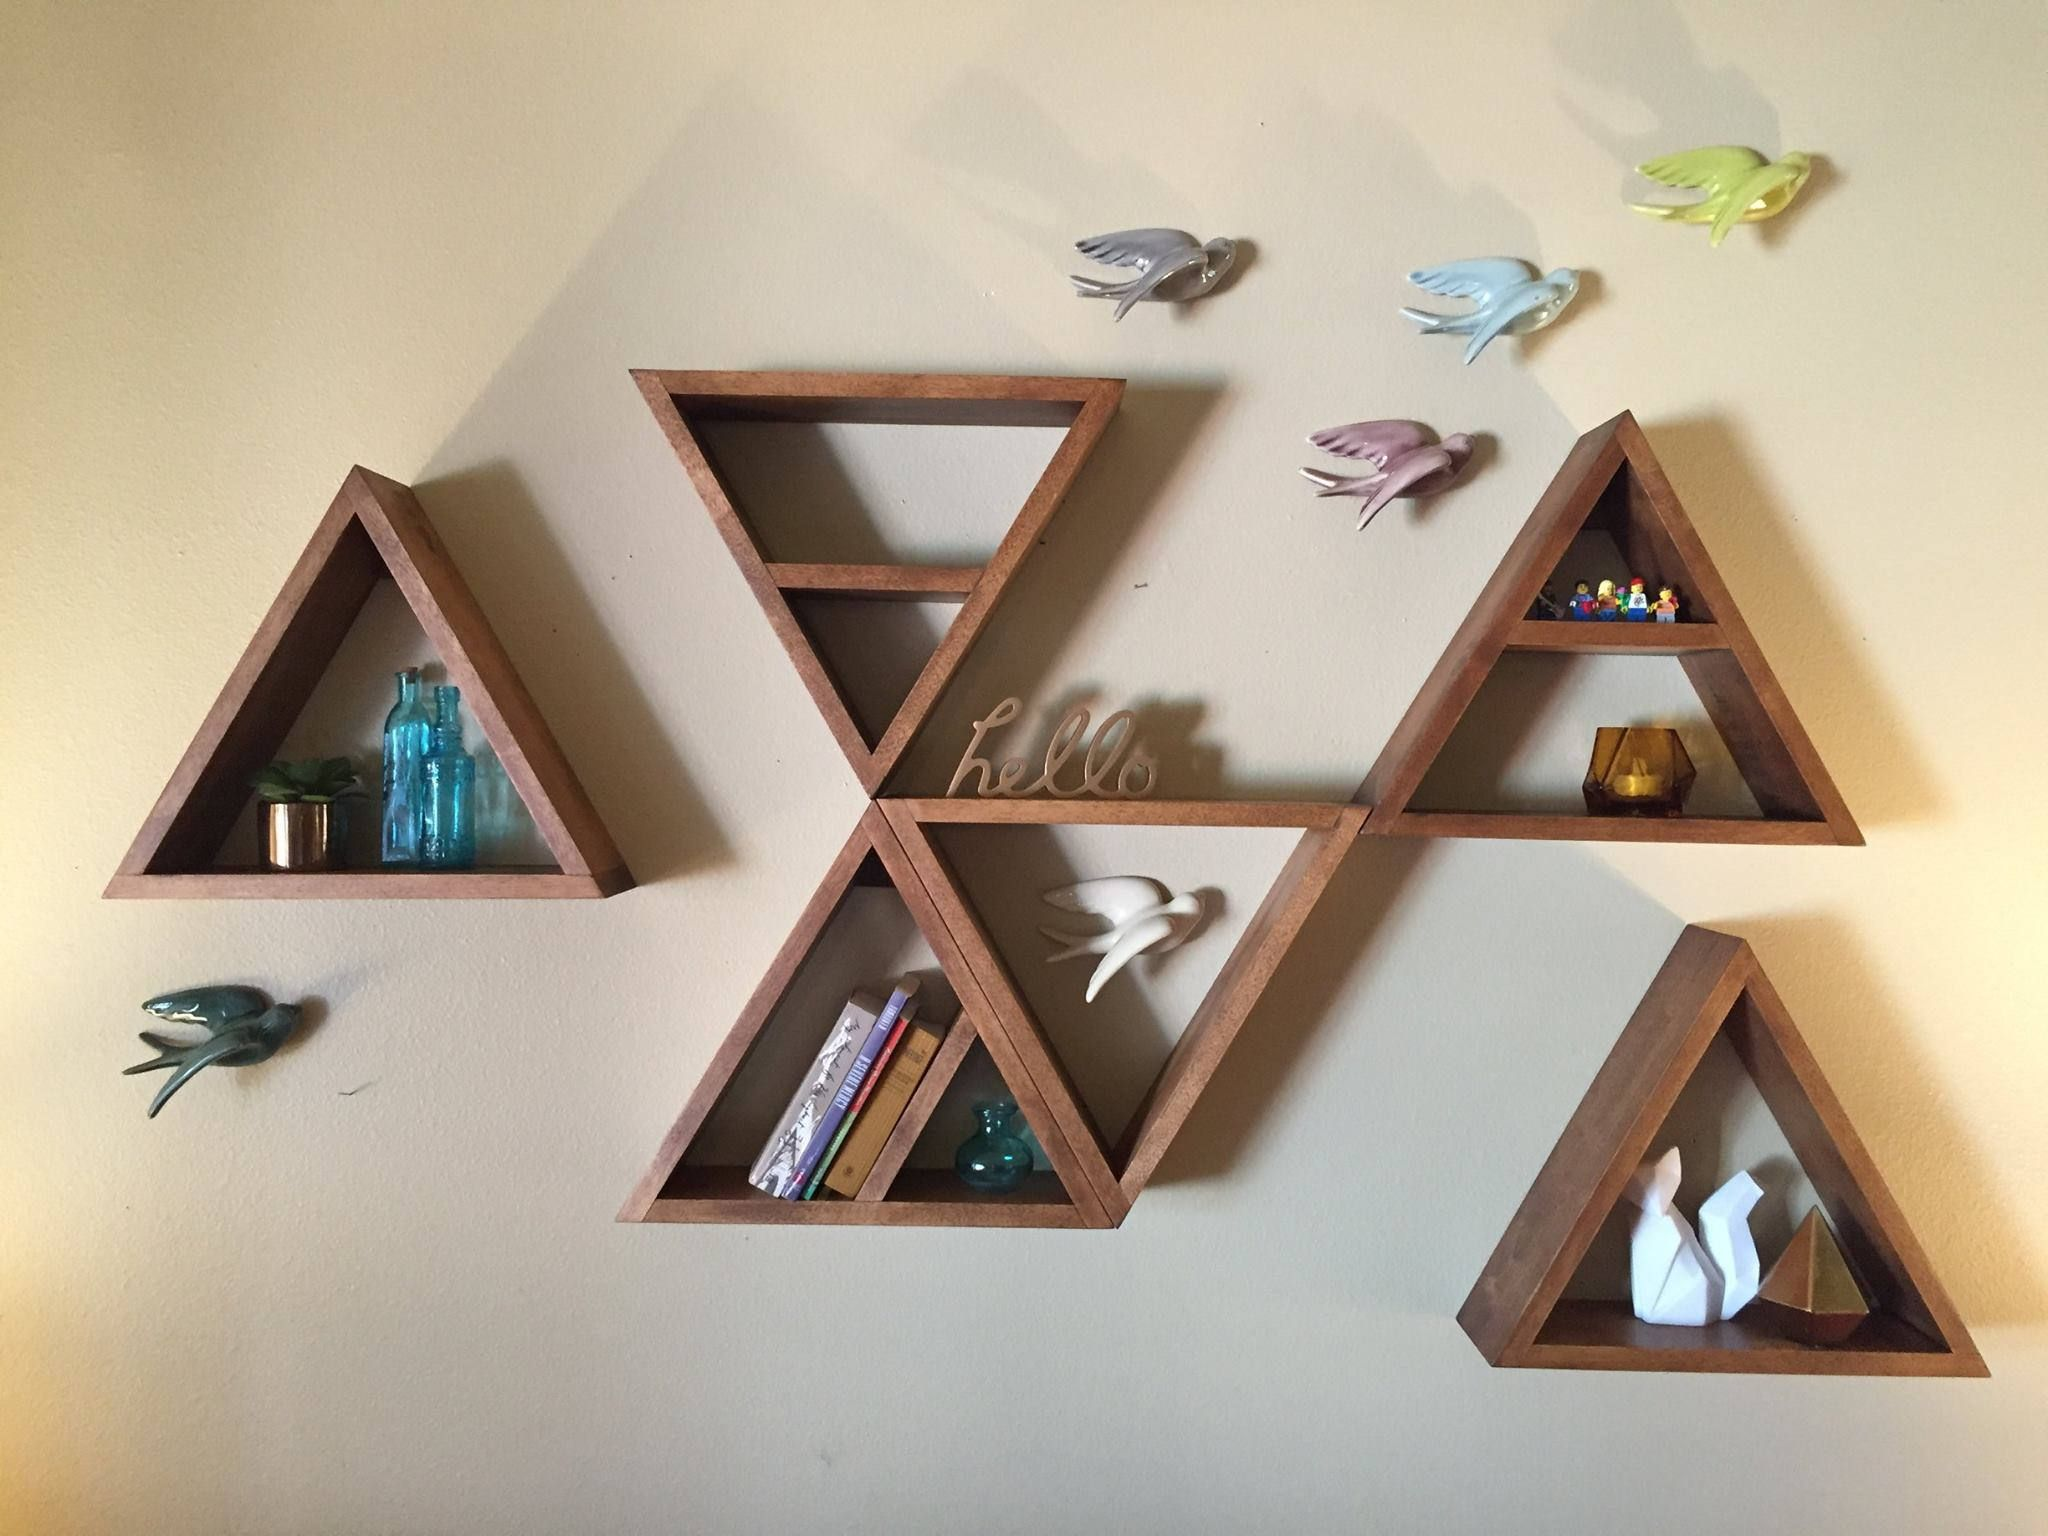 Homemade geometric shelves and wood signs. von